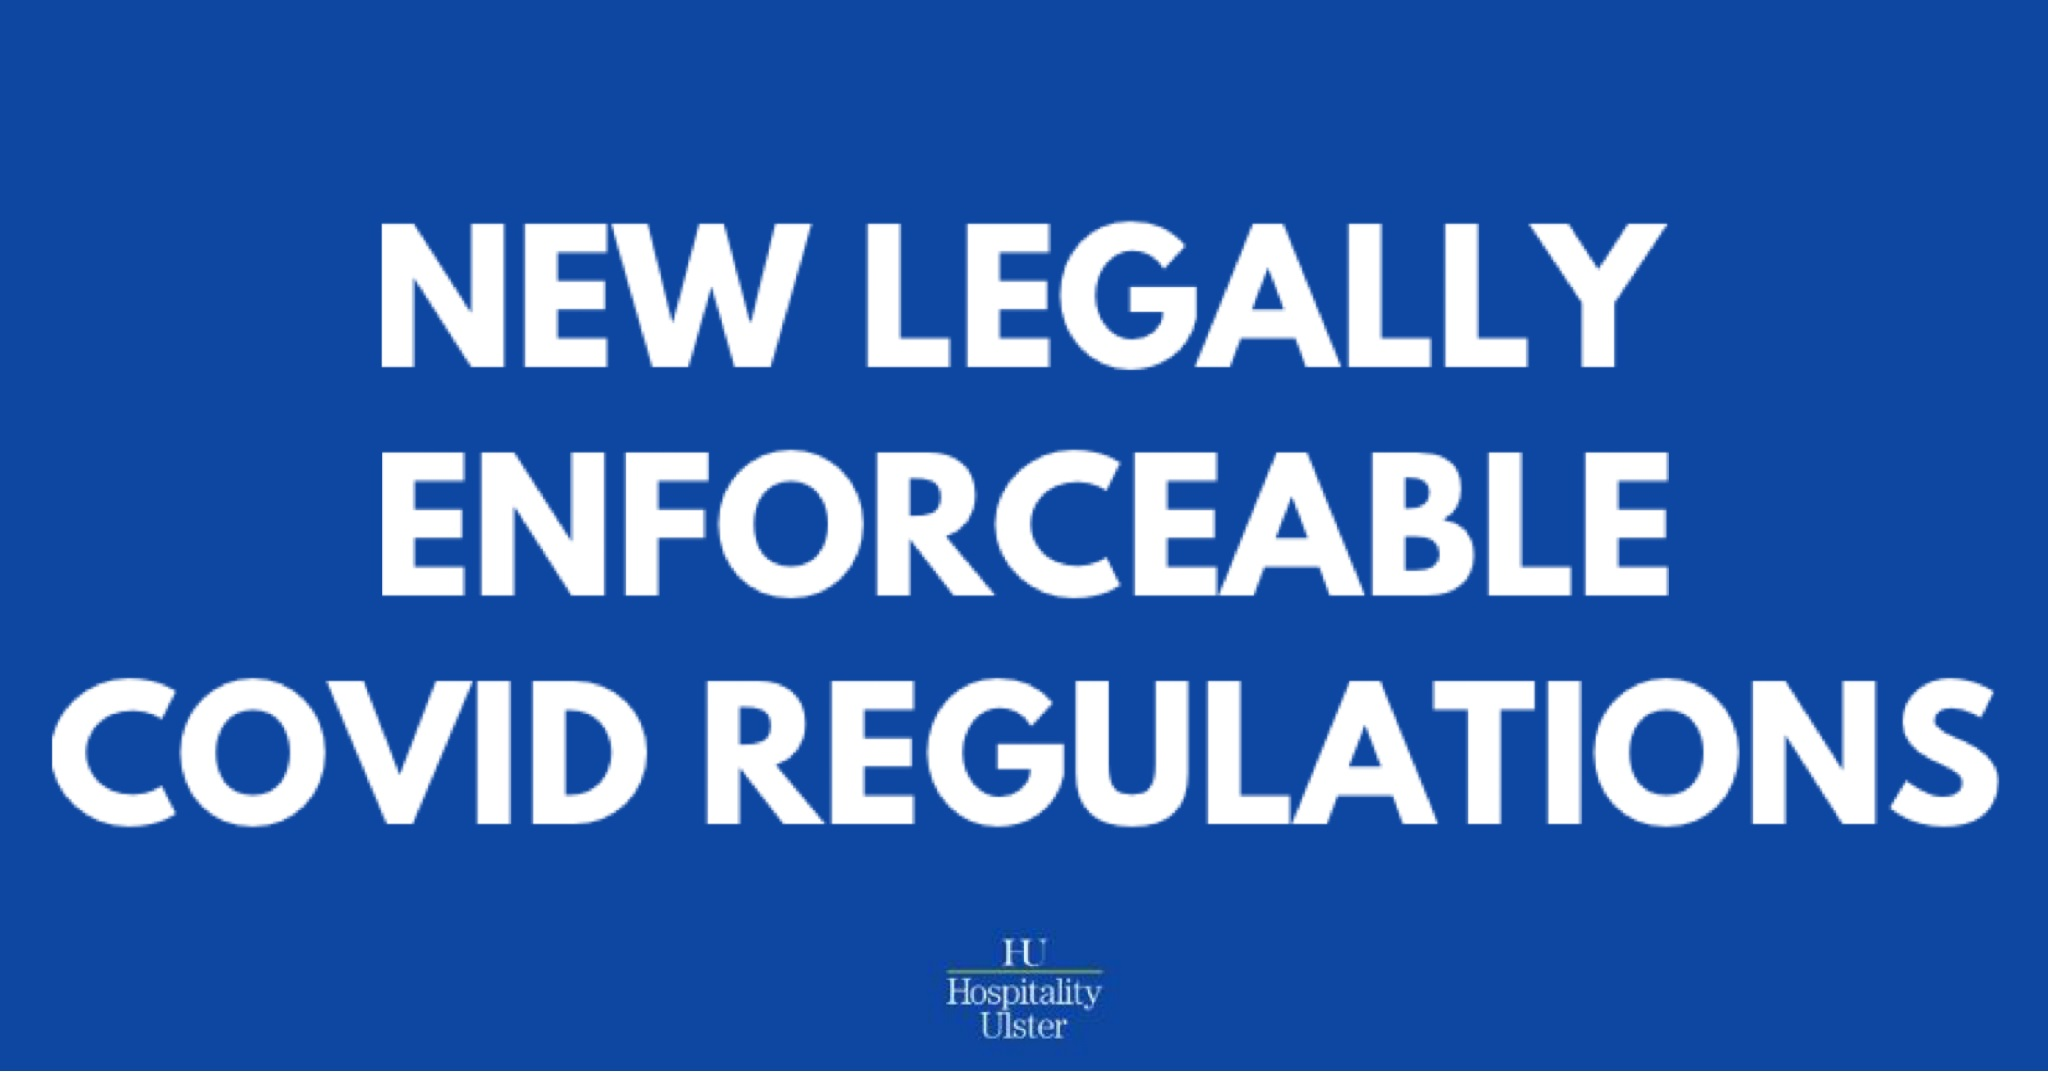 NEW LEGALLY ENFORCEABLE COVID REGULATIONS